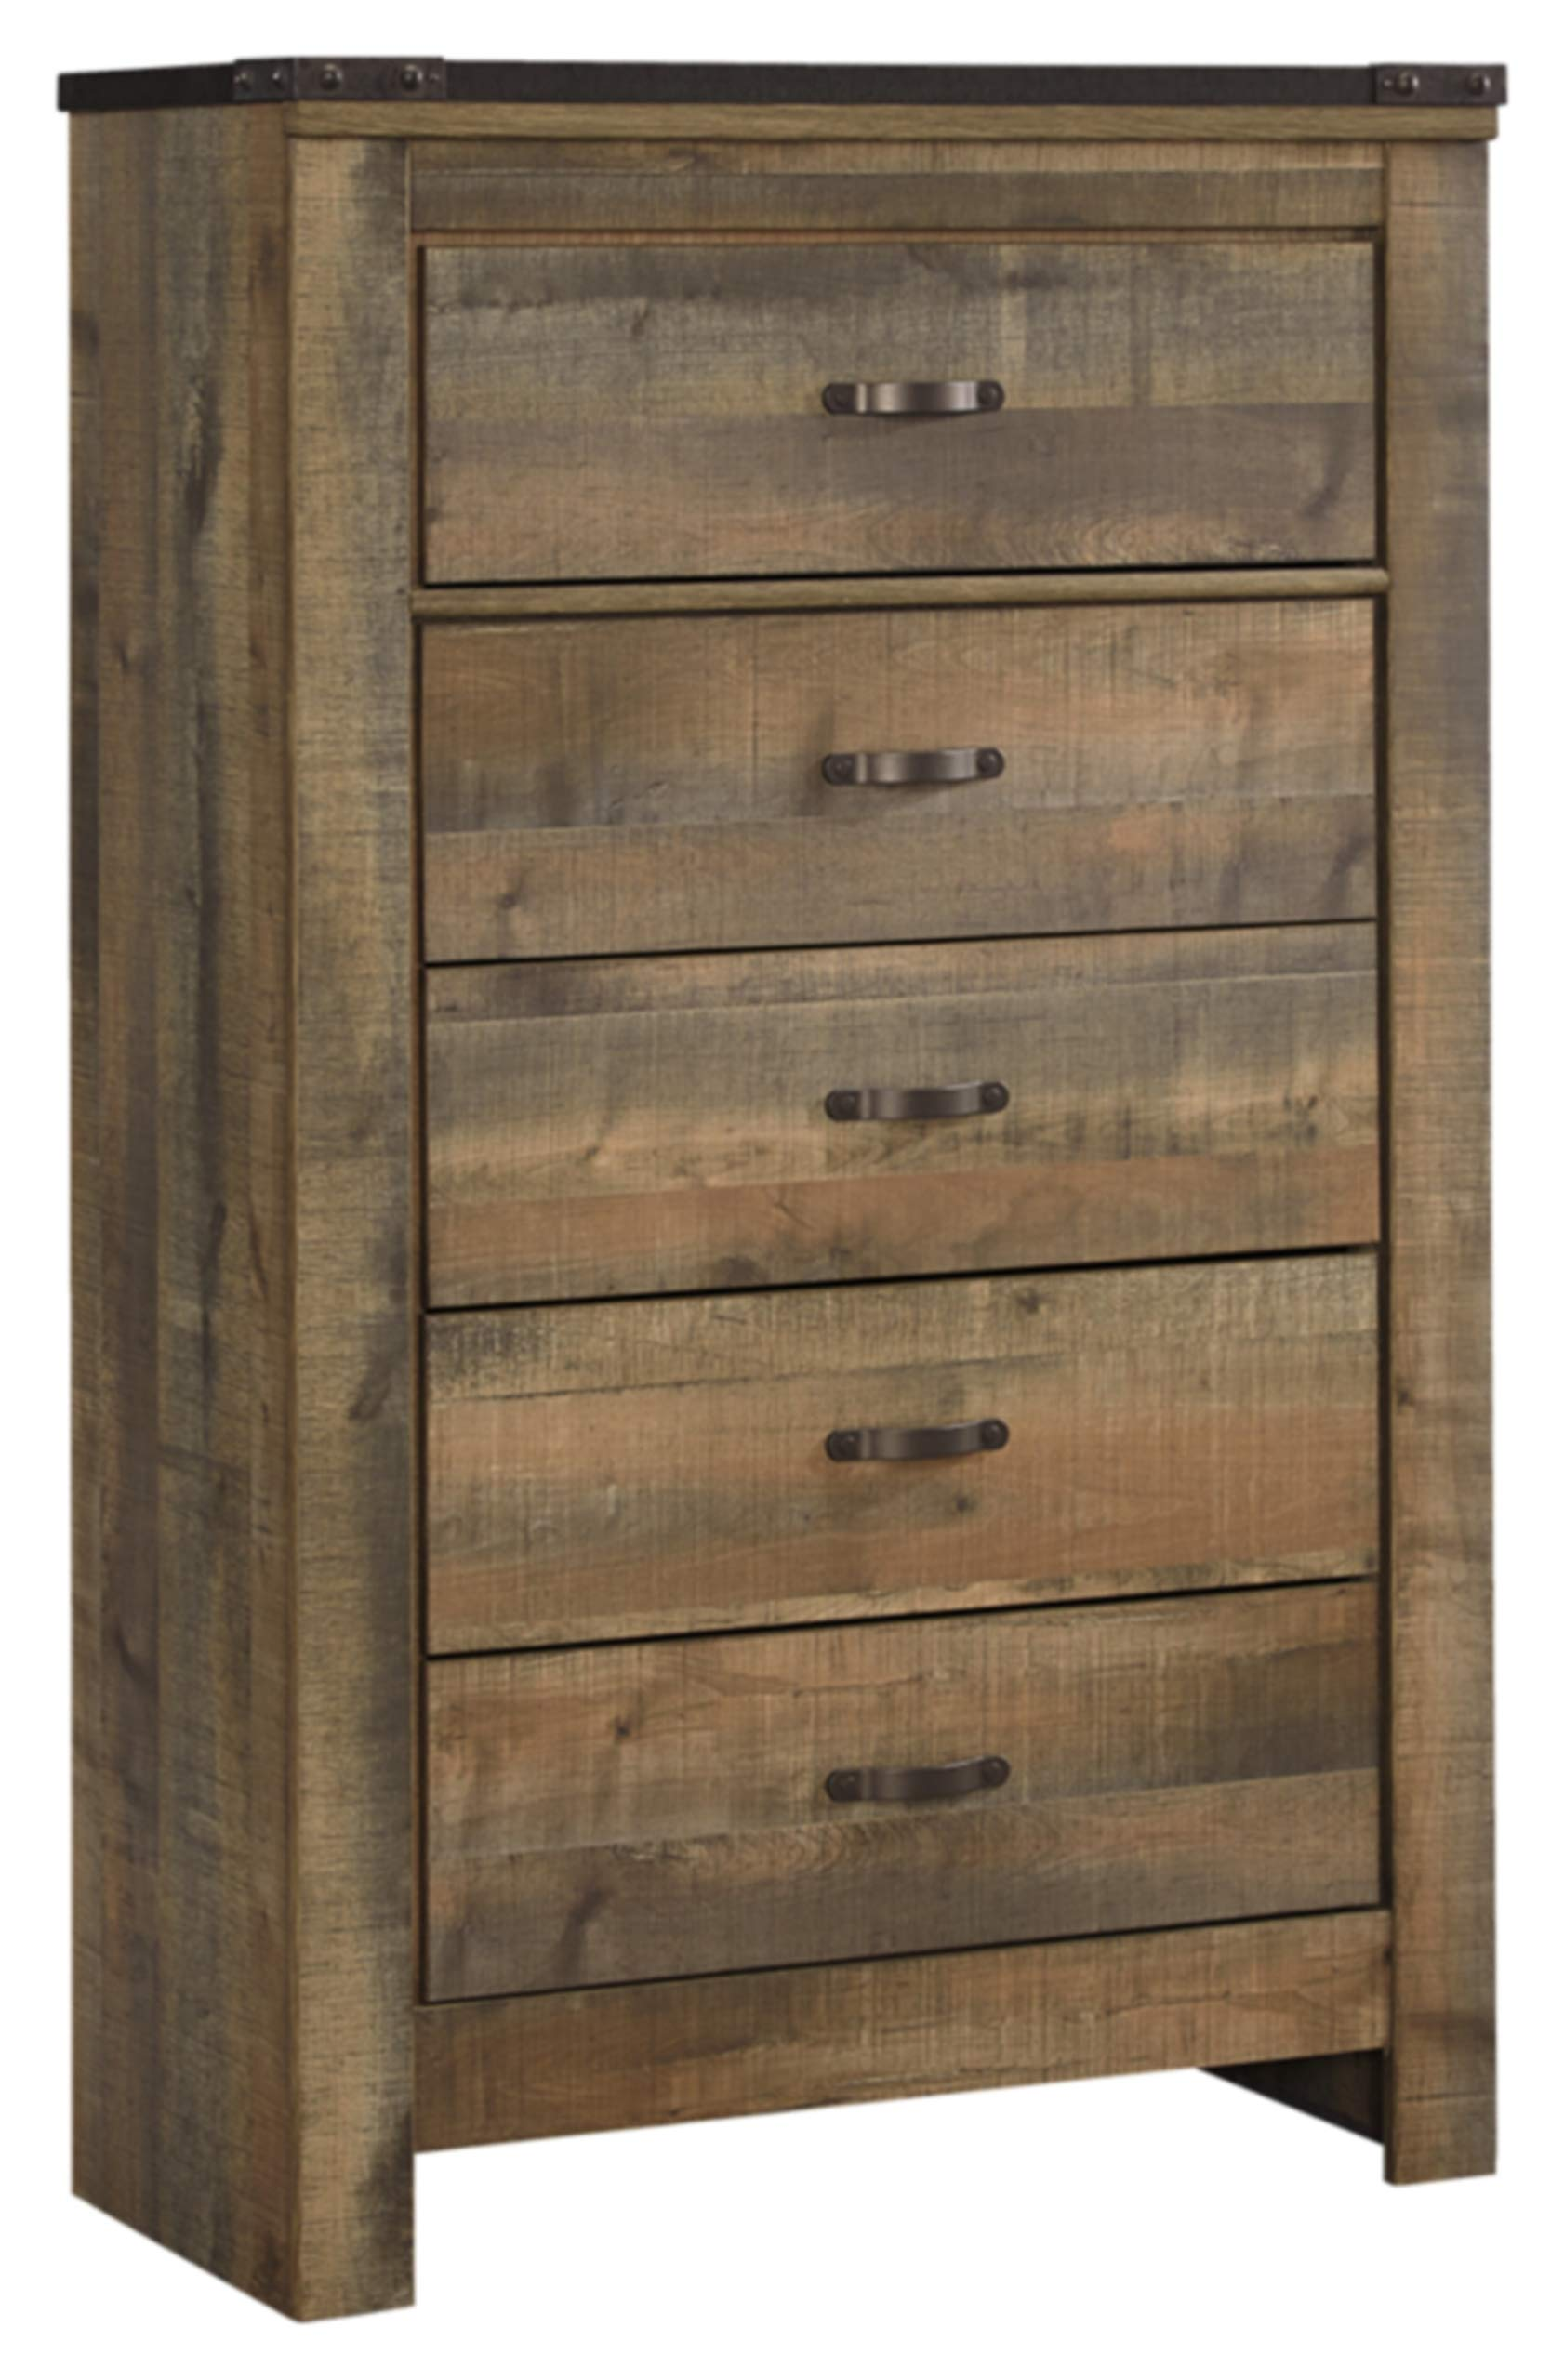 Ashley Furniture Signature Design - Trinell Chest - 5 Drawers - Nailhead Accents - Rustic Brown Finish - Antiqued Bronze Hardware by Signature Design by Ashley